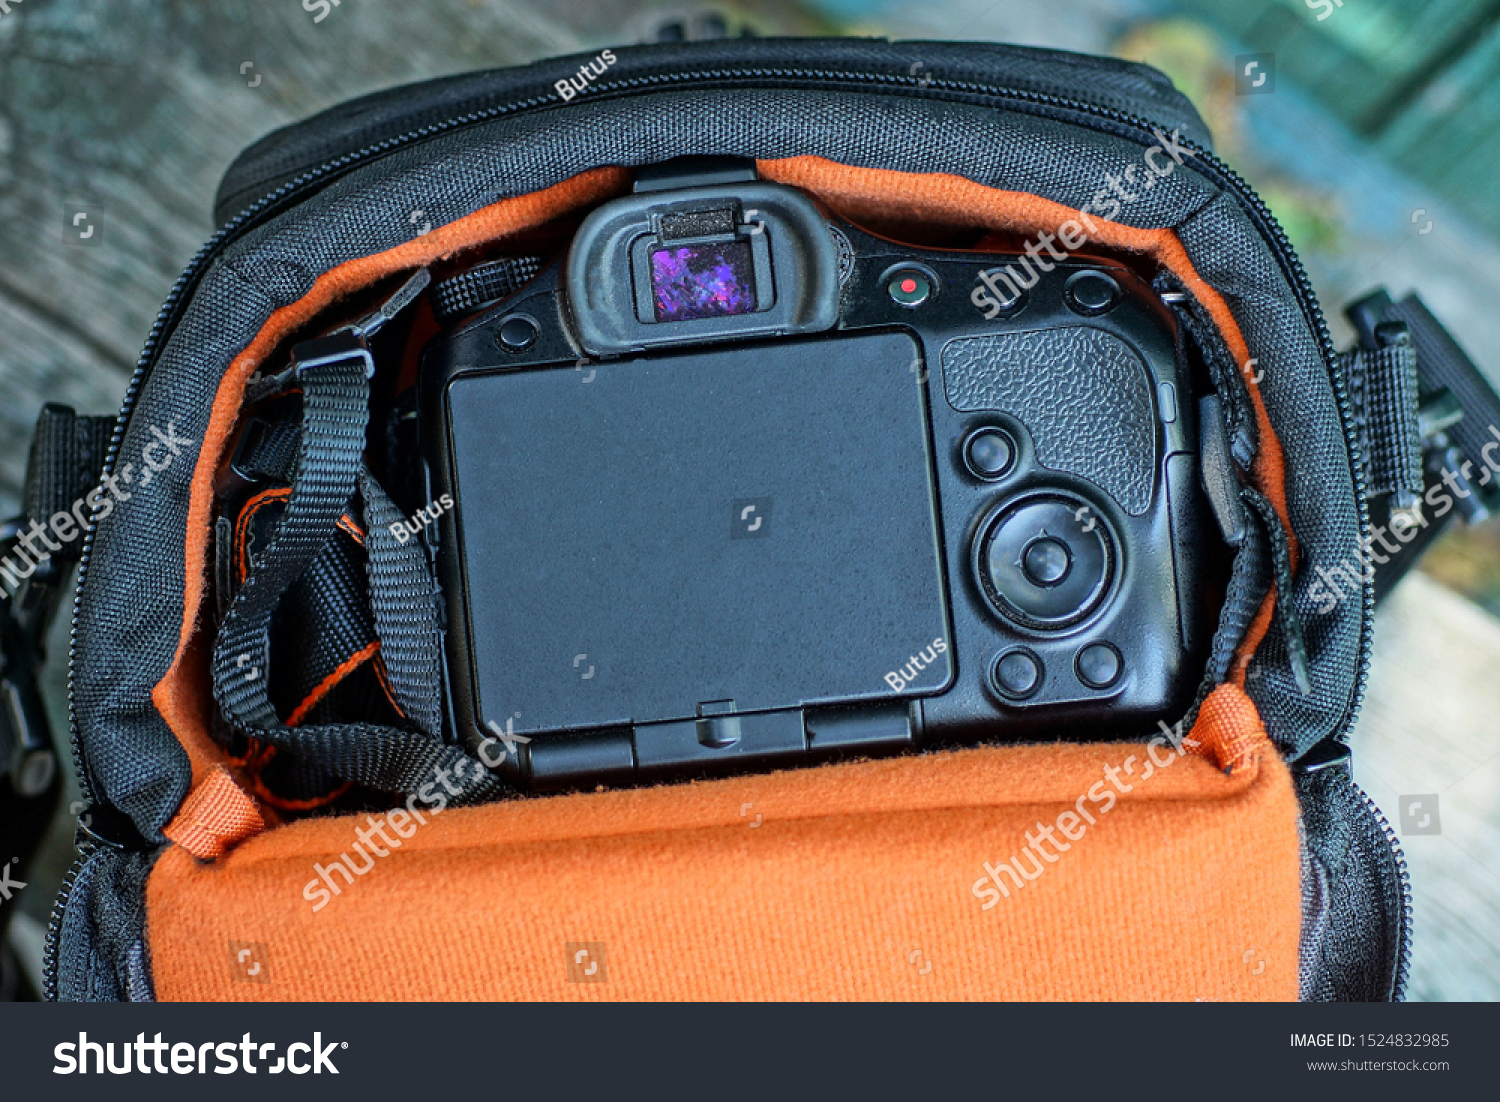 one orange bag with a black camera on a gray table #1524832985